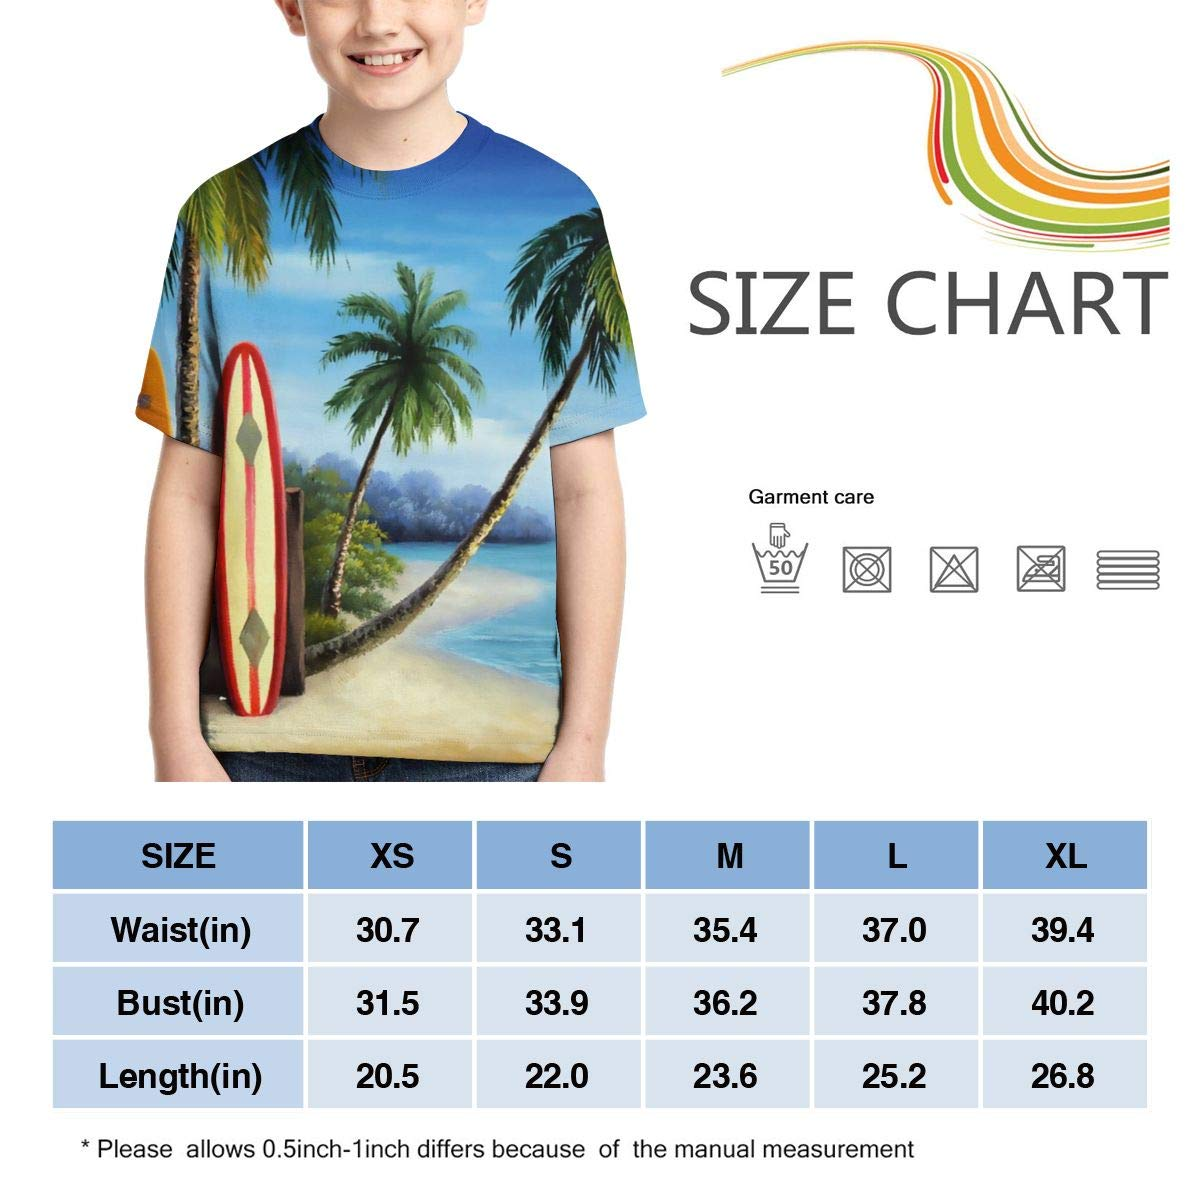 Vy32jg-2 Short-Sleeve Surfboards and Palm Trees Shirts for Boys XS-XL Kawaii Blouse Clothes